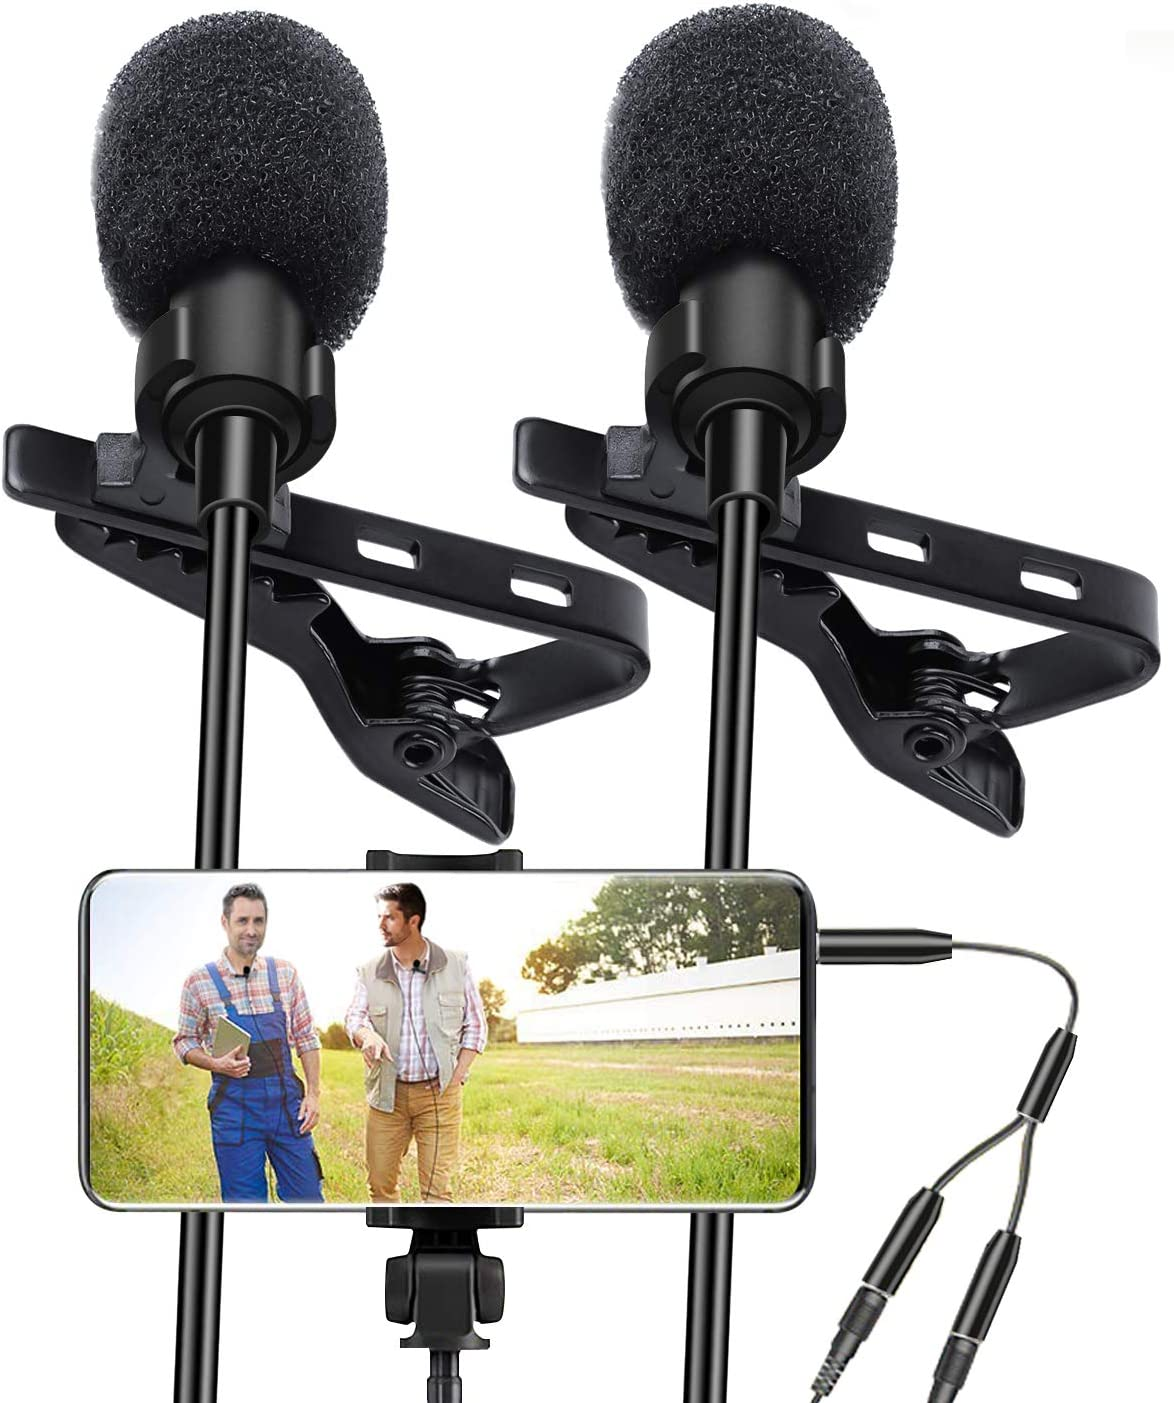 MOMAN MA6 Lavalier Microphone Clip-on Omnidirectional Mic with Auto Pairing 6 Meter//19.7 Feet Cord for iPhone Android Smartphone DSLR Camera Perfect for Broadcast Interview Youtube Video Recording